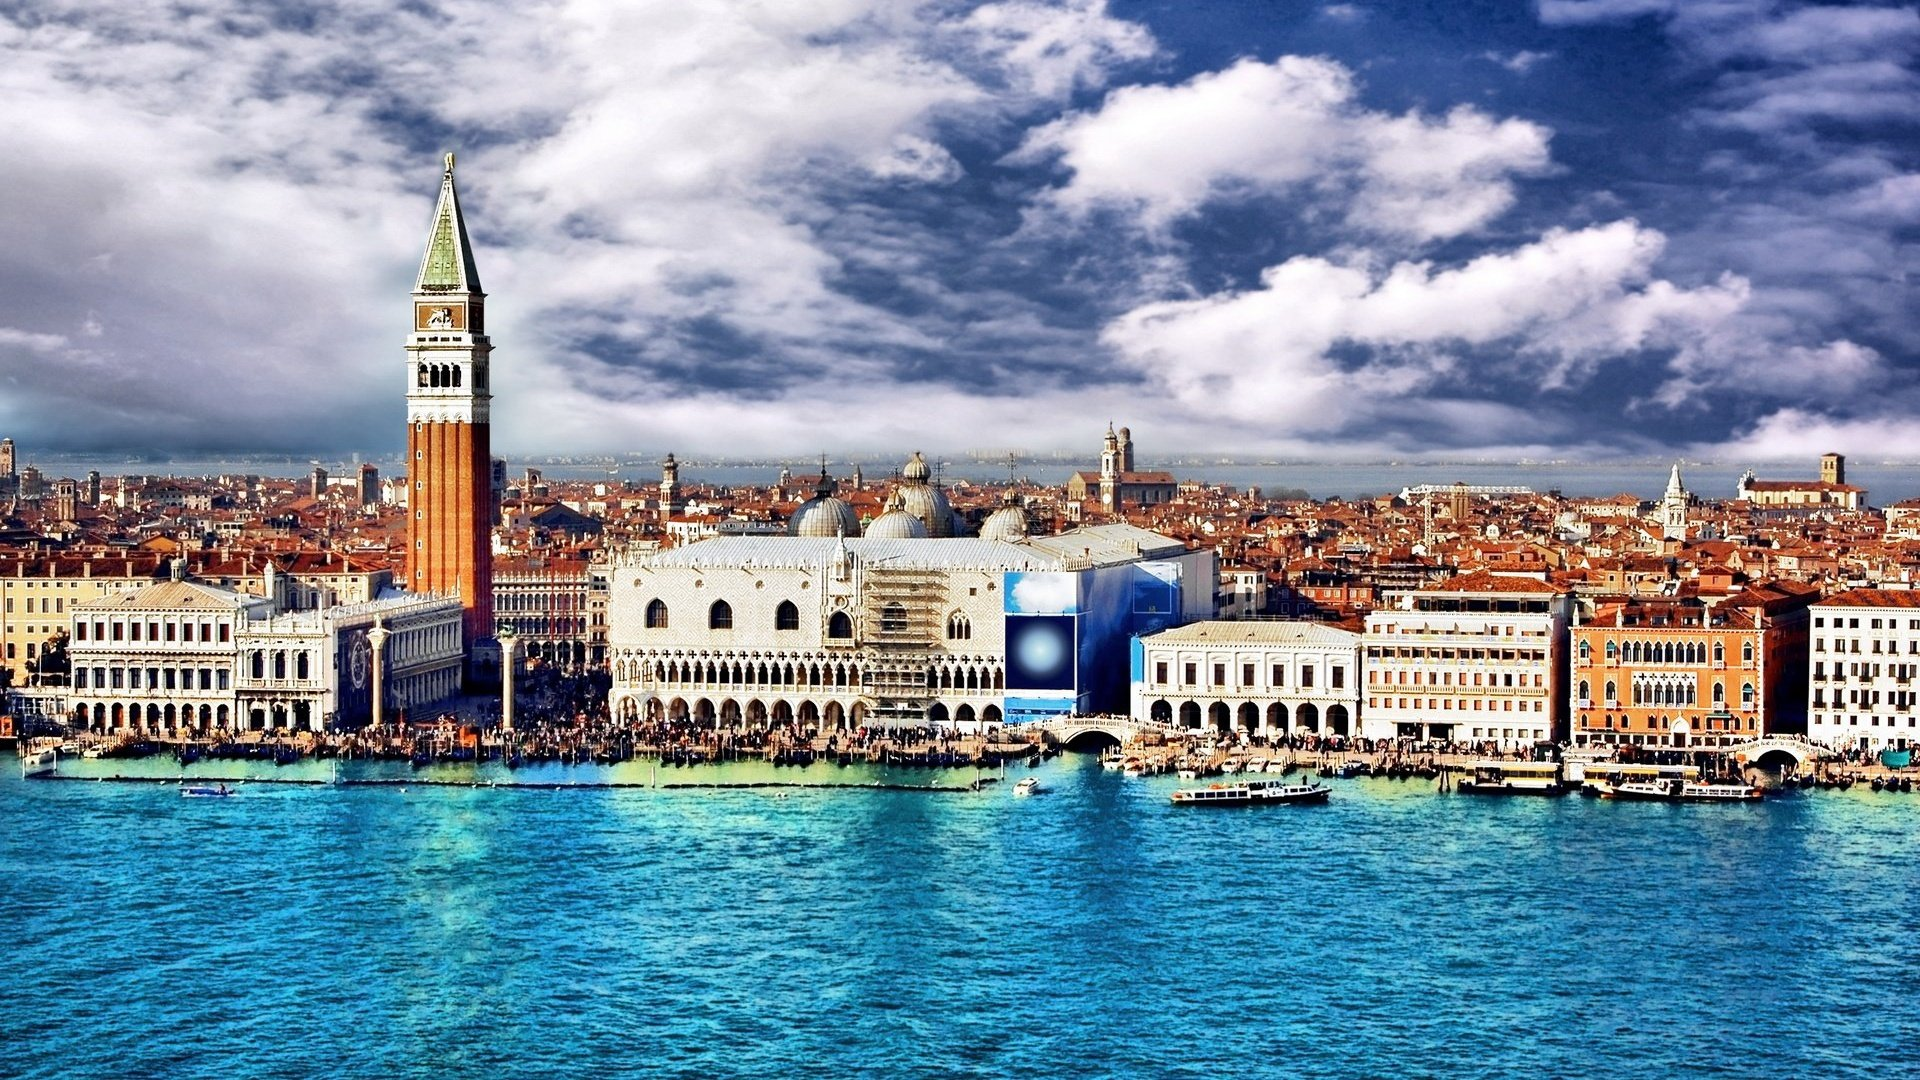 Wallpaper italy venice italy venice water sky clouds city 1920x1080